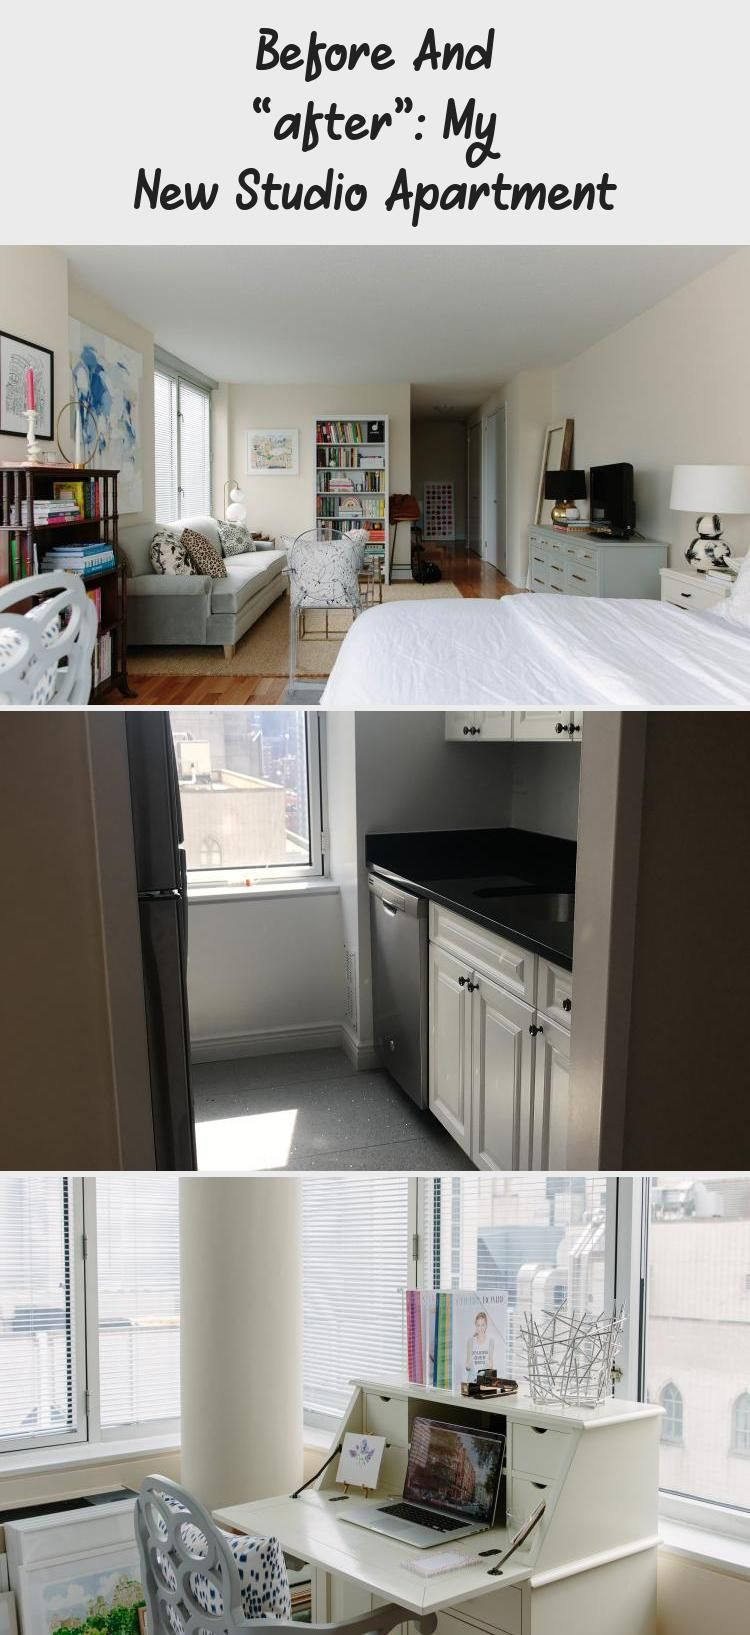 Before And After My New Studio Apartment York Avenue Apartmentdecorrental Apartmentdecorblue Apartmentdecorbrowncouch Apartmentdecorbeach Apartmentdec In 2020